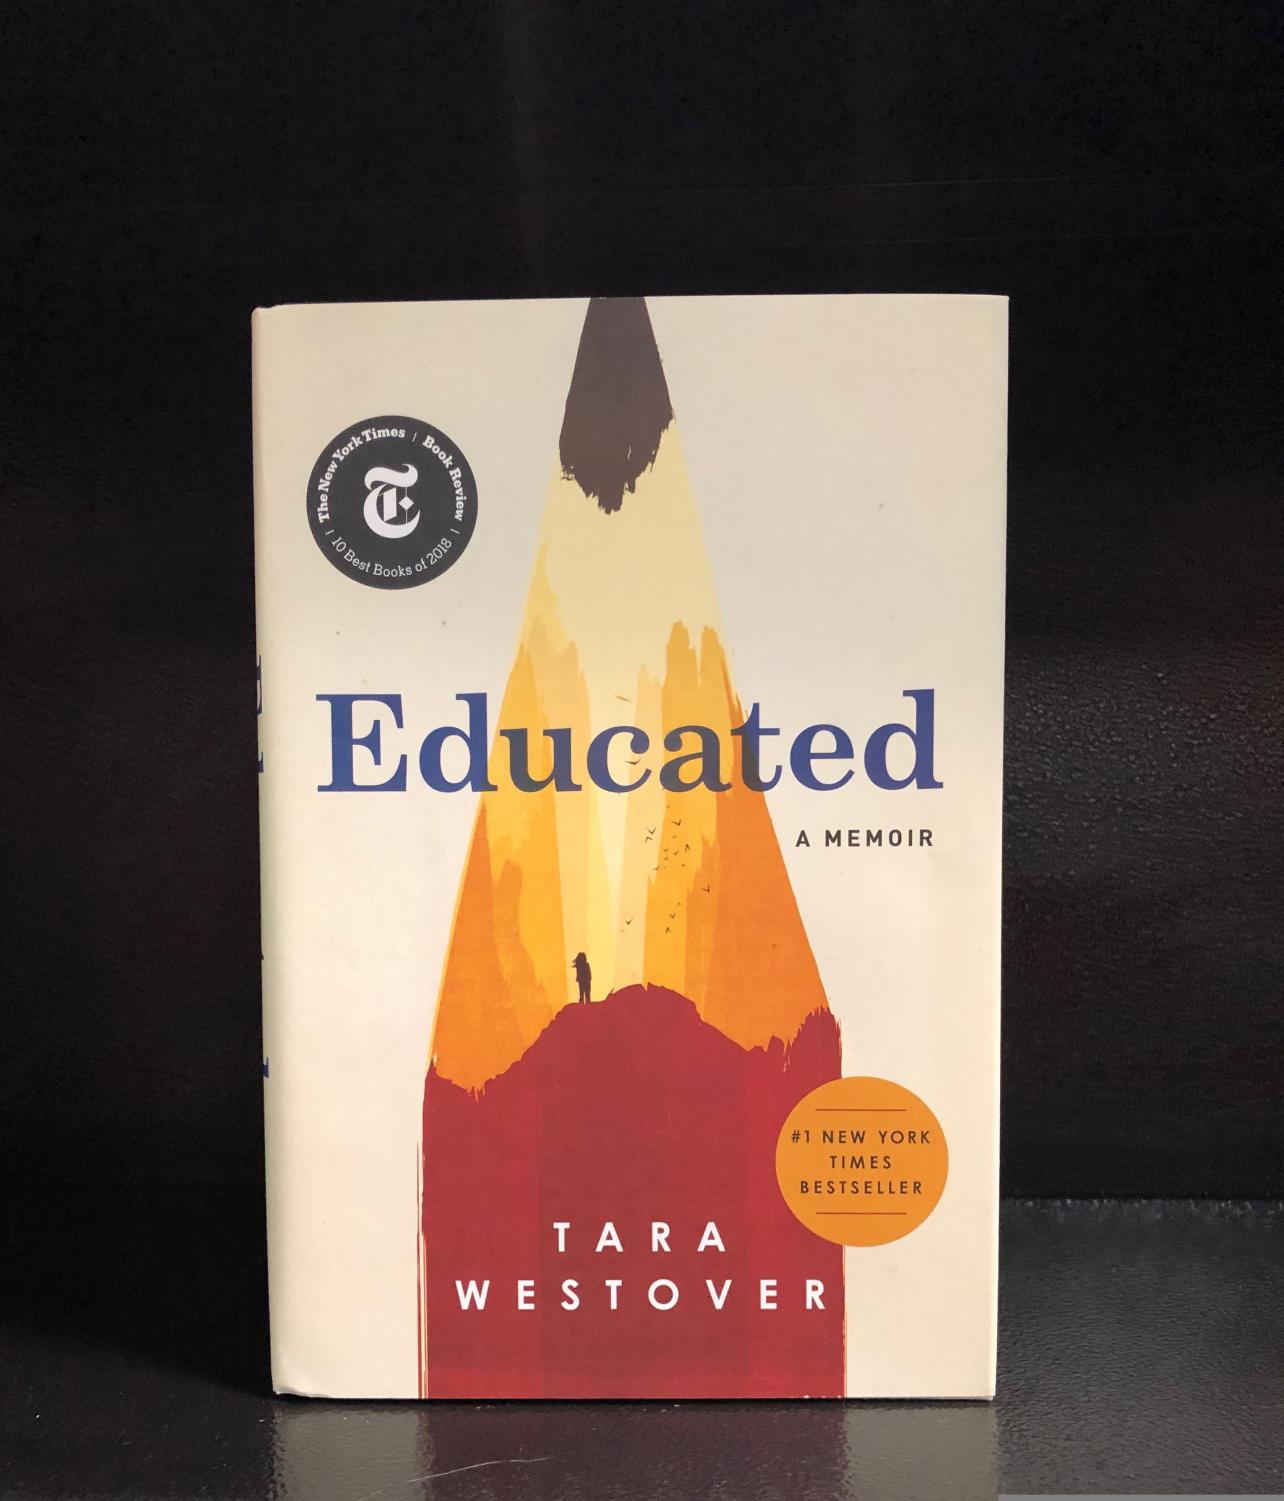 Educated, released in February 2018, has been creating a storm since it hit the shelves. Many praise the memoir for its riveting tale.